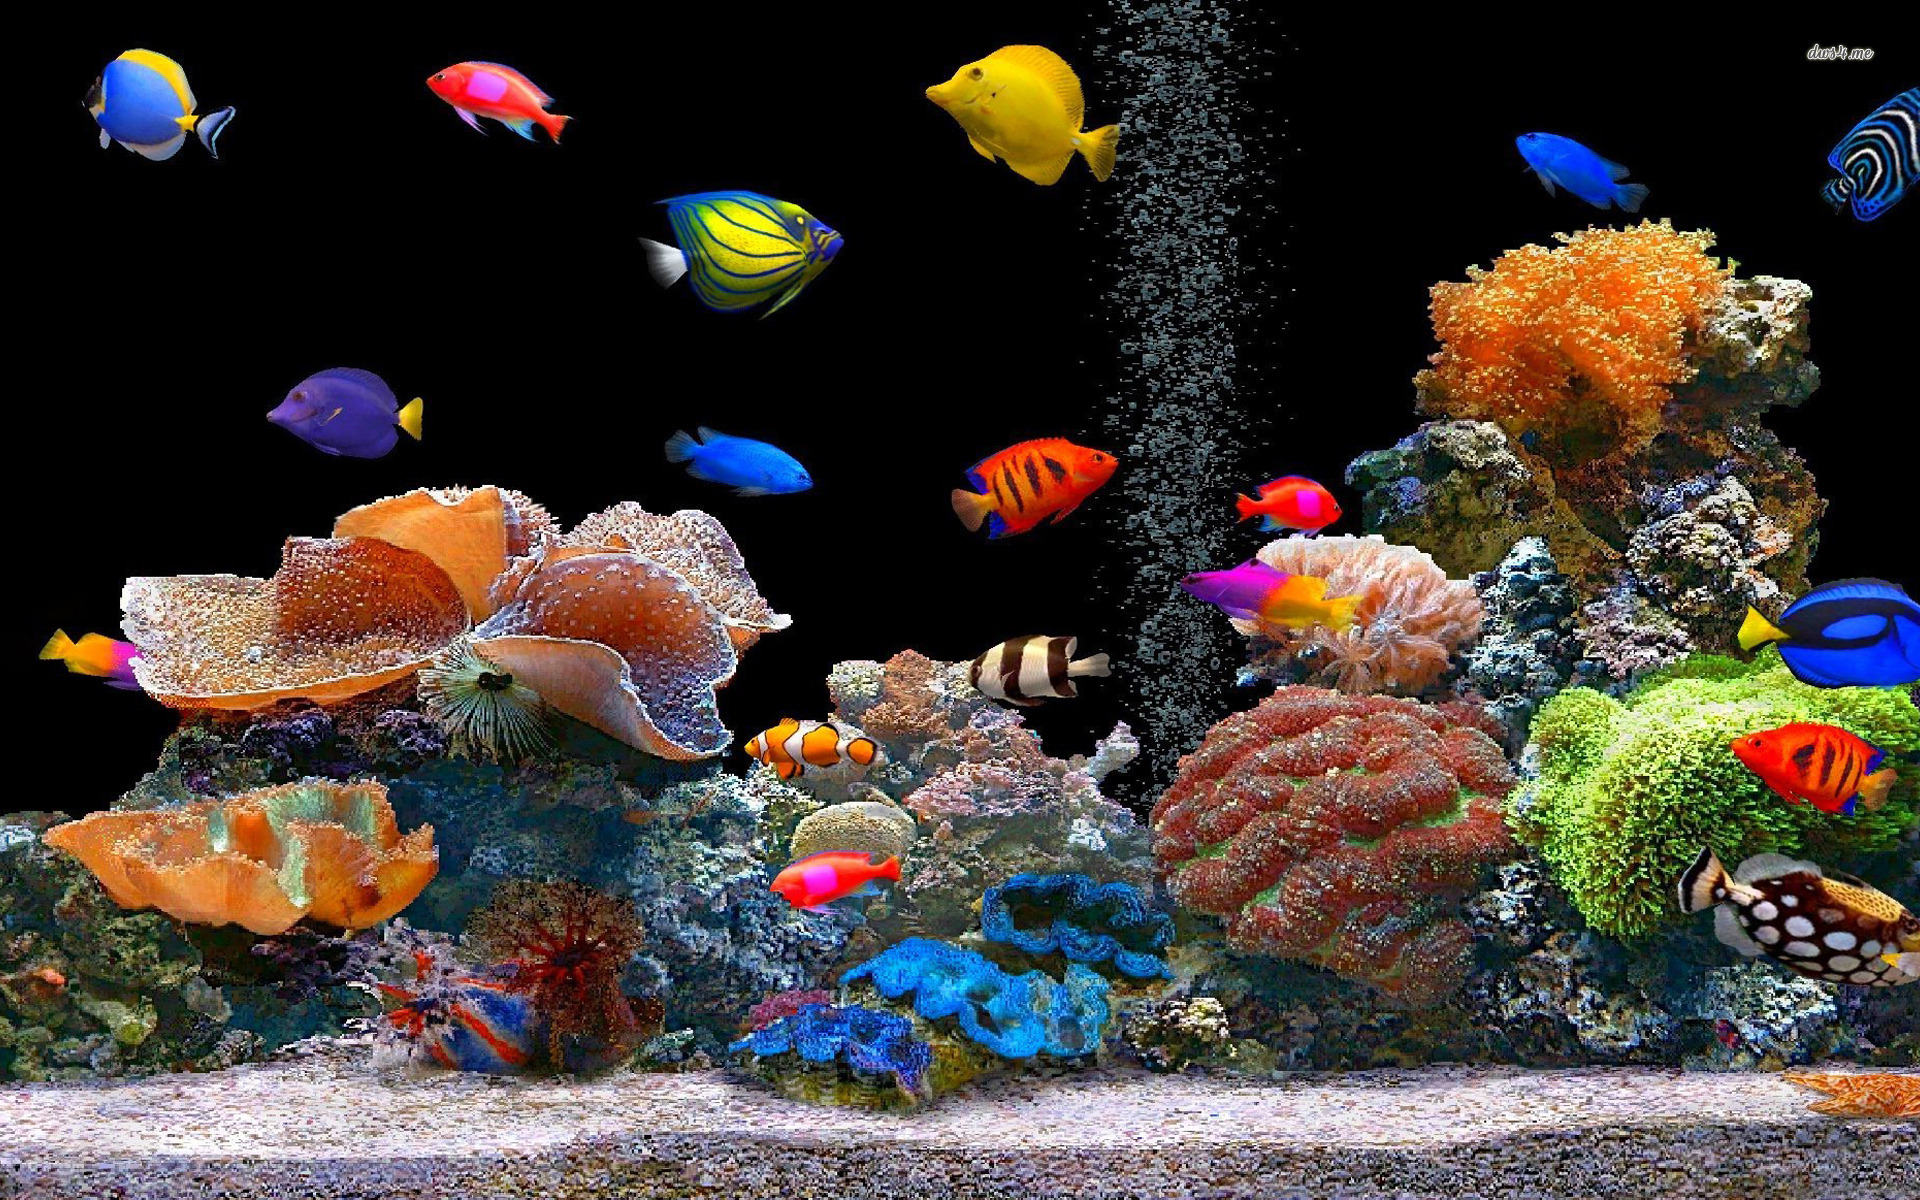 Peces de colores hd 1920x1200 imagenes wallpapers for Acuarios originales